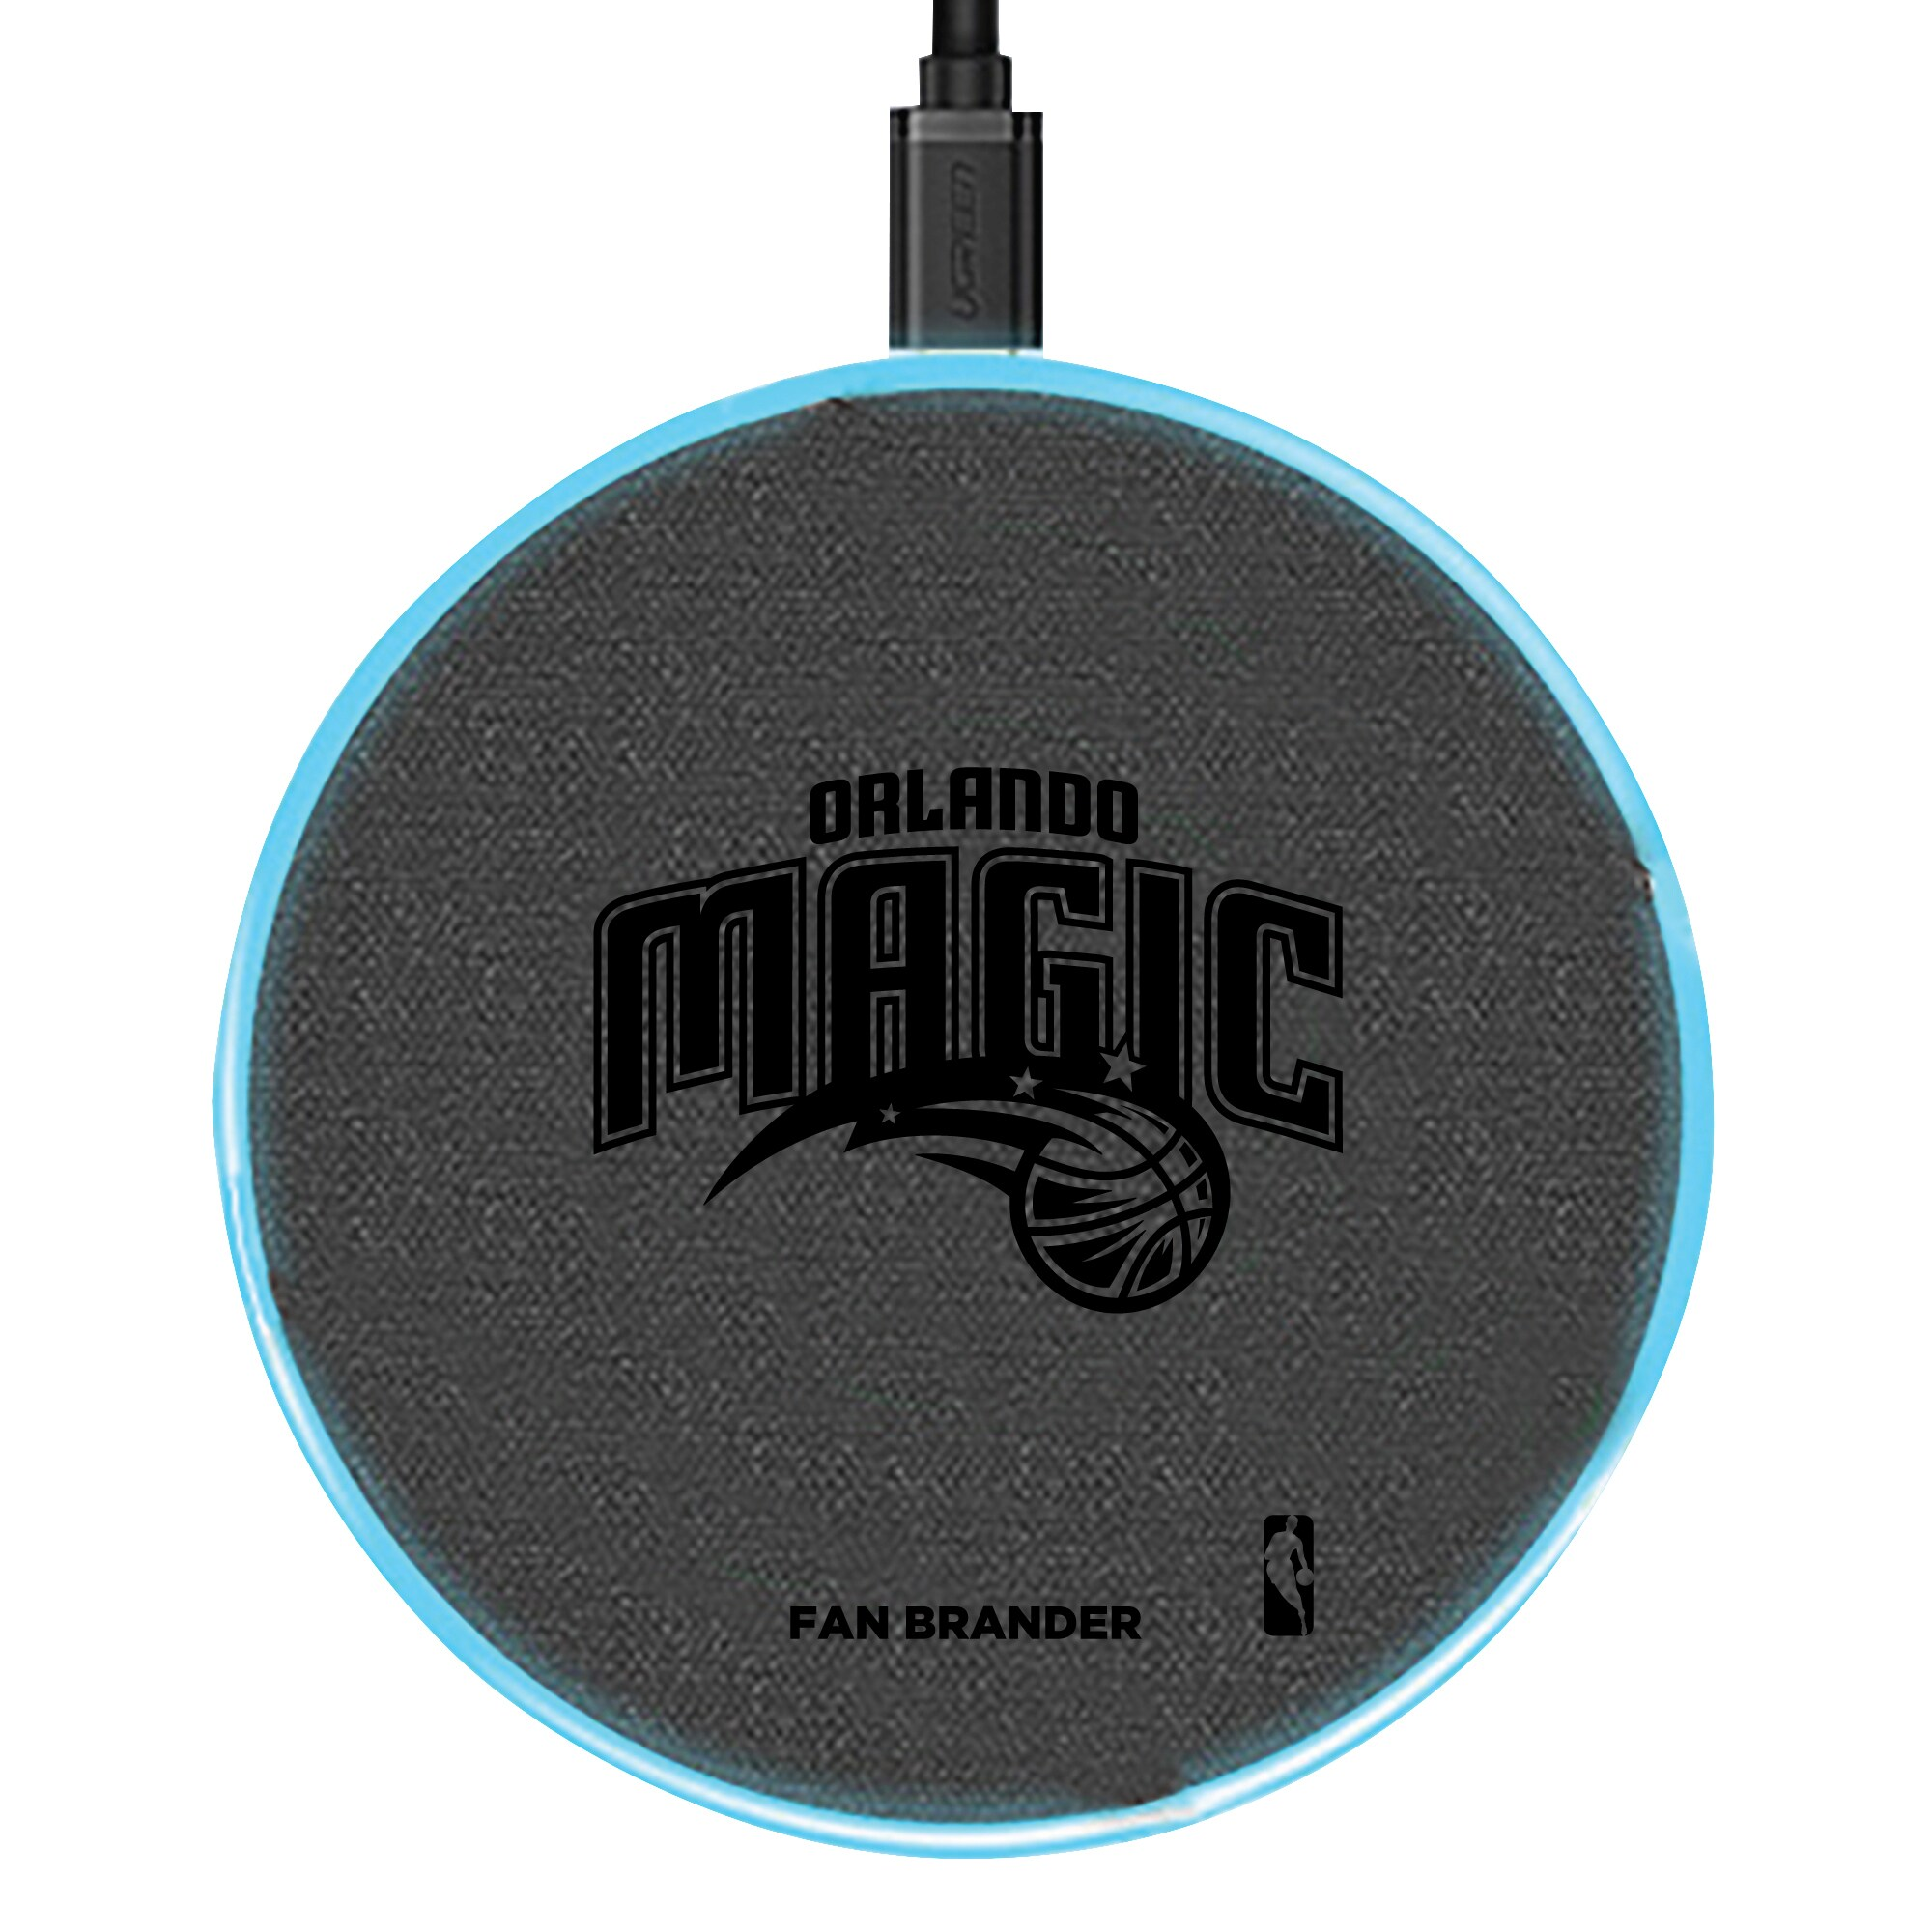 Orlando Magic 15W Laser Etched Wireless Charging Base - Gray